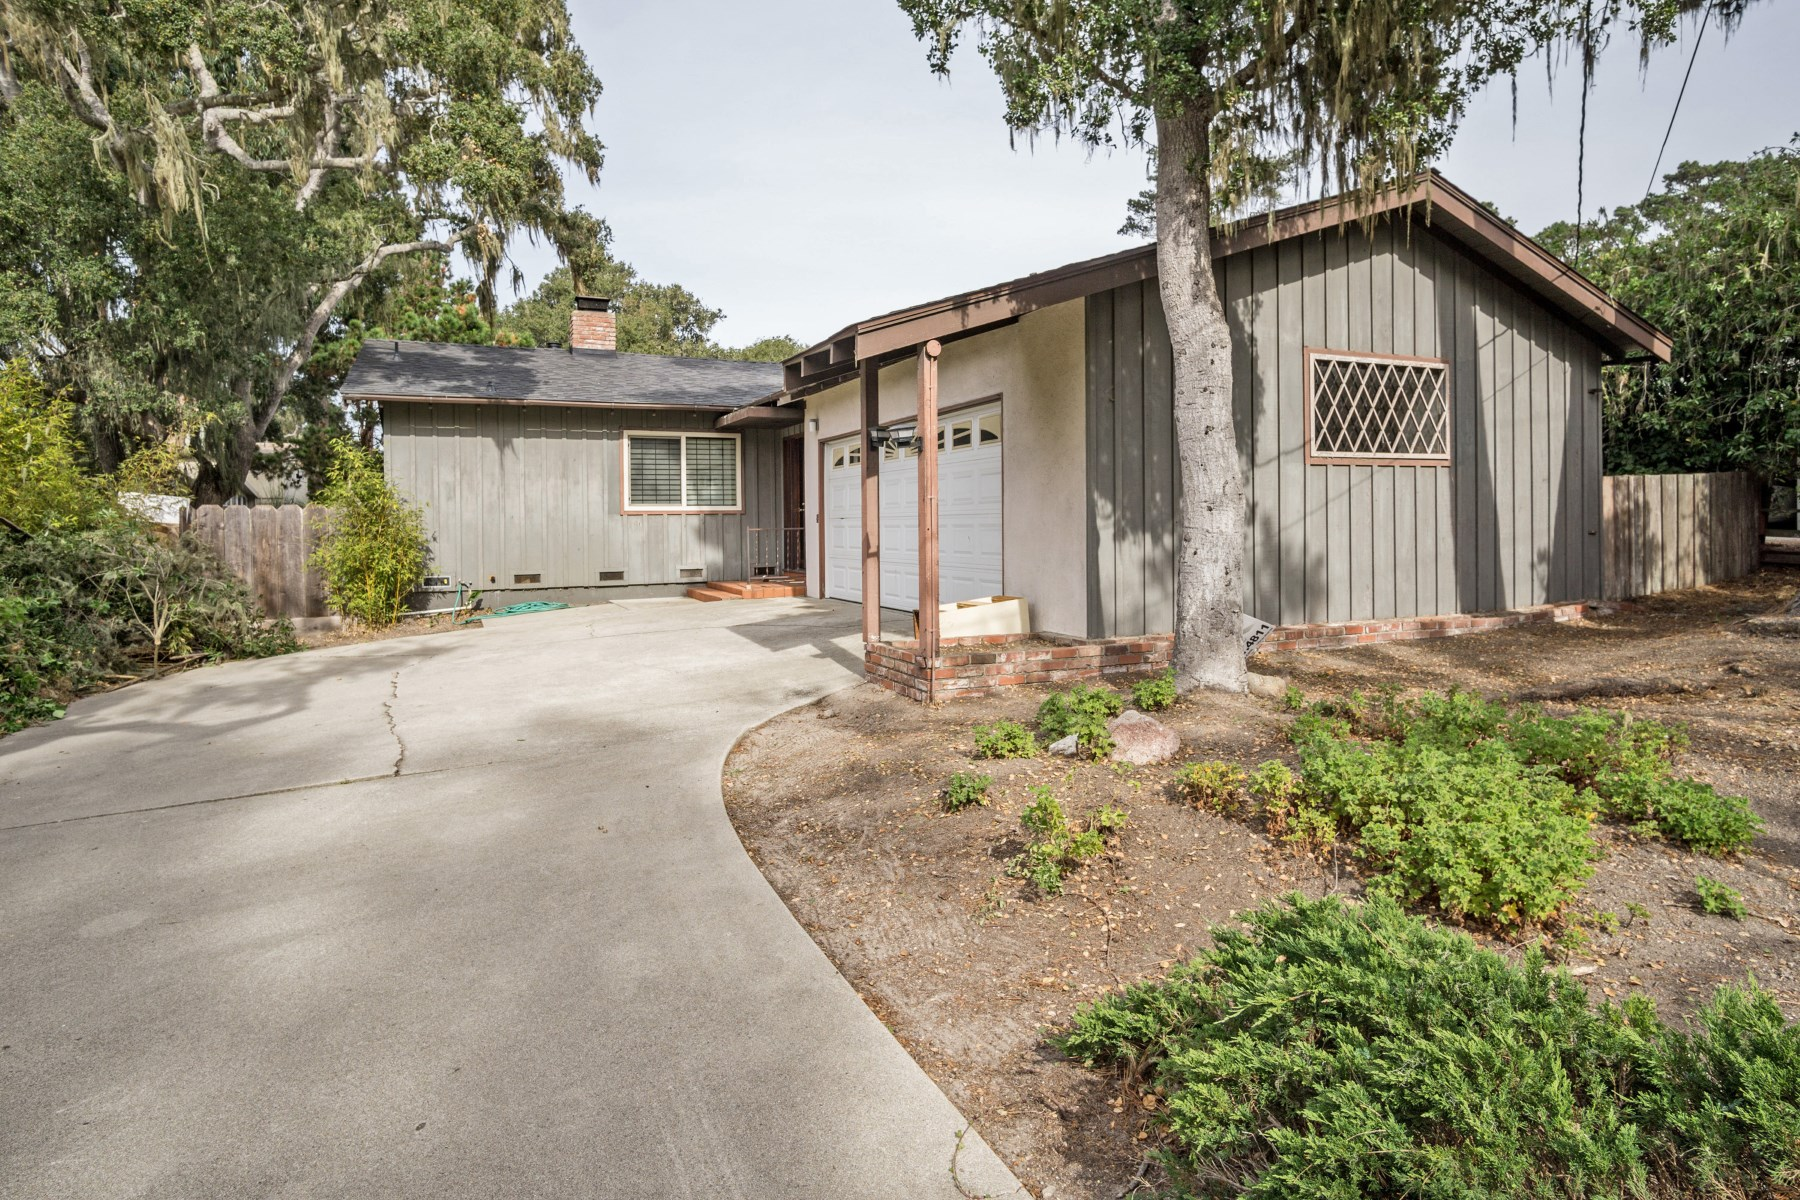 Single Family Home for Sale at Project Home in Pacific Grove, CA Pacific Grove, California 93950 United States